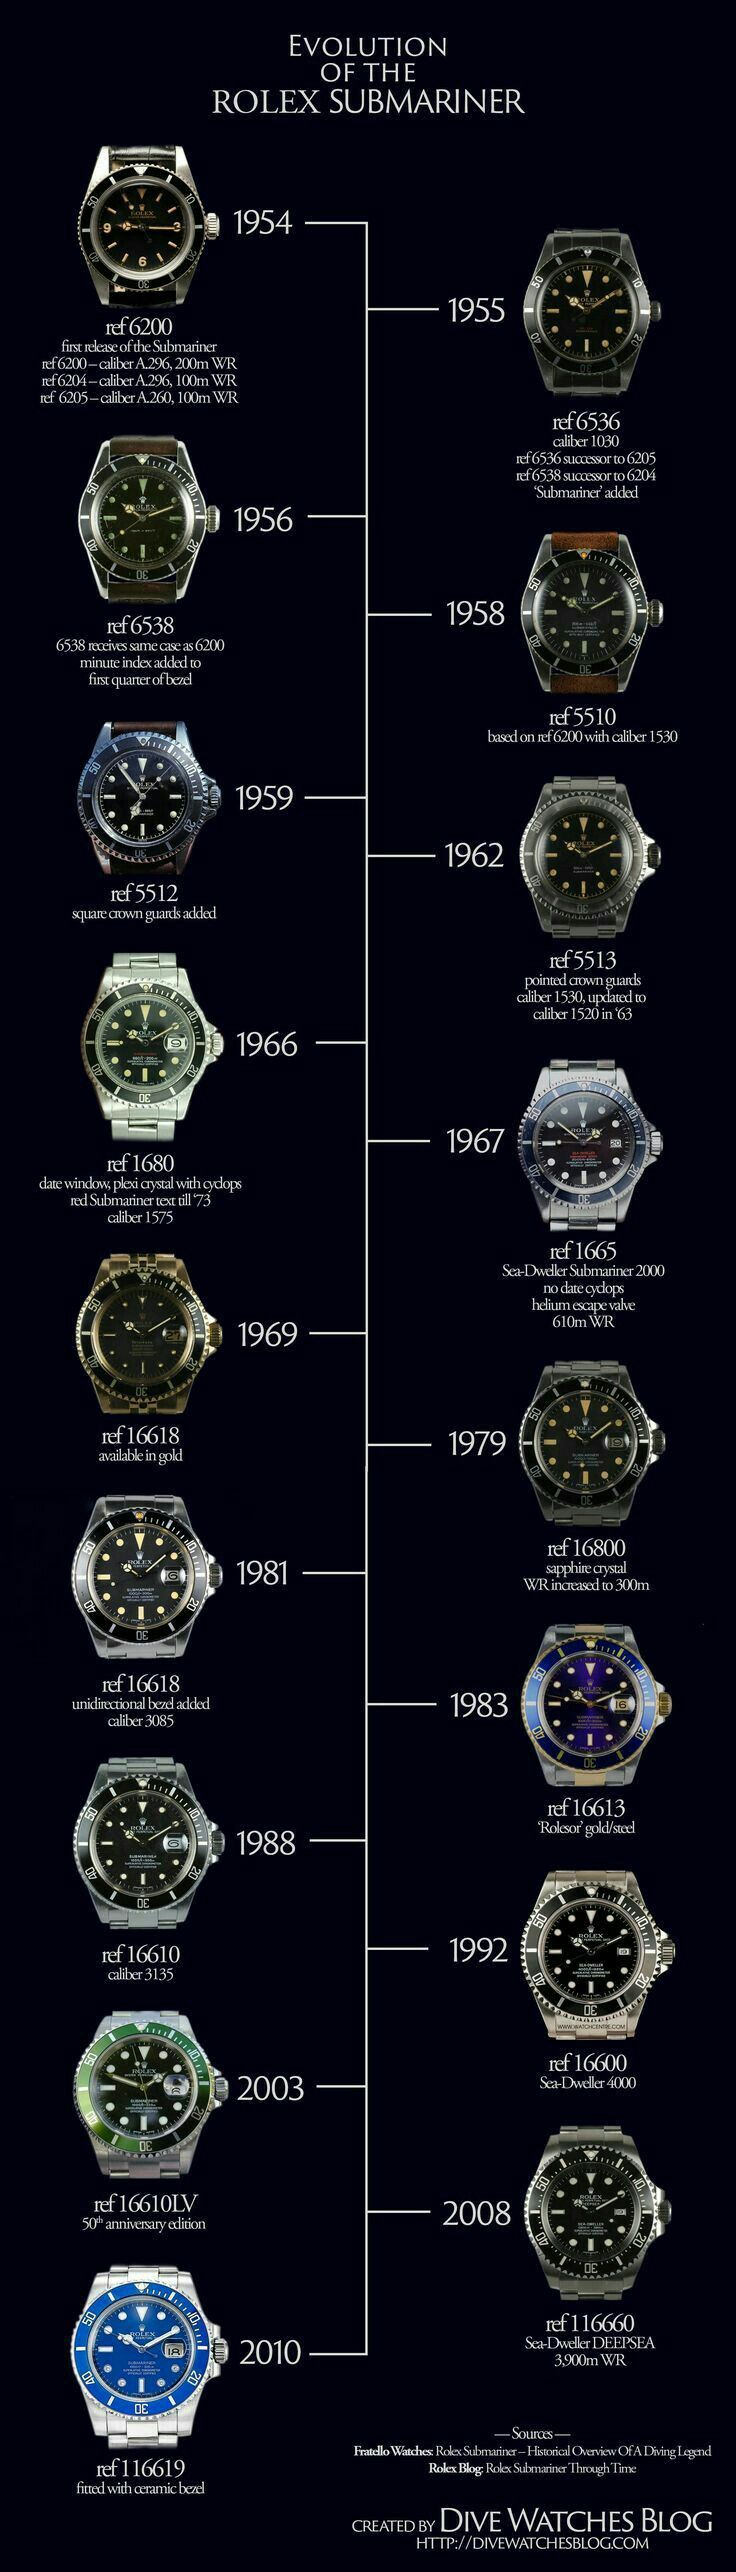 "Rolex set the standard in dive watches during the 1950s. With James Bond, and great marketing, managed to push their prices beyond actual function. Now, this perfectly functional, practical watch is only a ""desk"" diver - used to impress fellow office employees. However, modern technology has enabled others to produce homage watches with impressive technical performance and utility at a reasonable price. Why would one expose a vintage, $60,000, Rolex to the swamps, jungles, mountains etc.?"